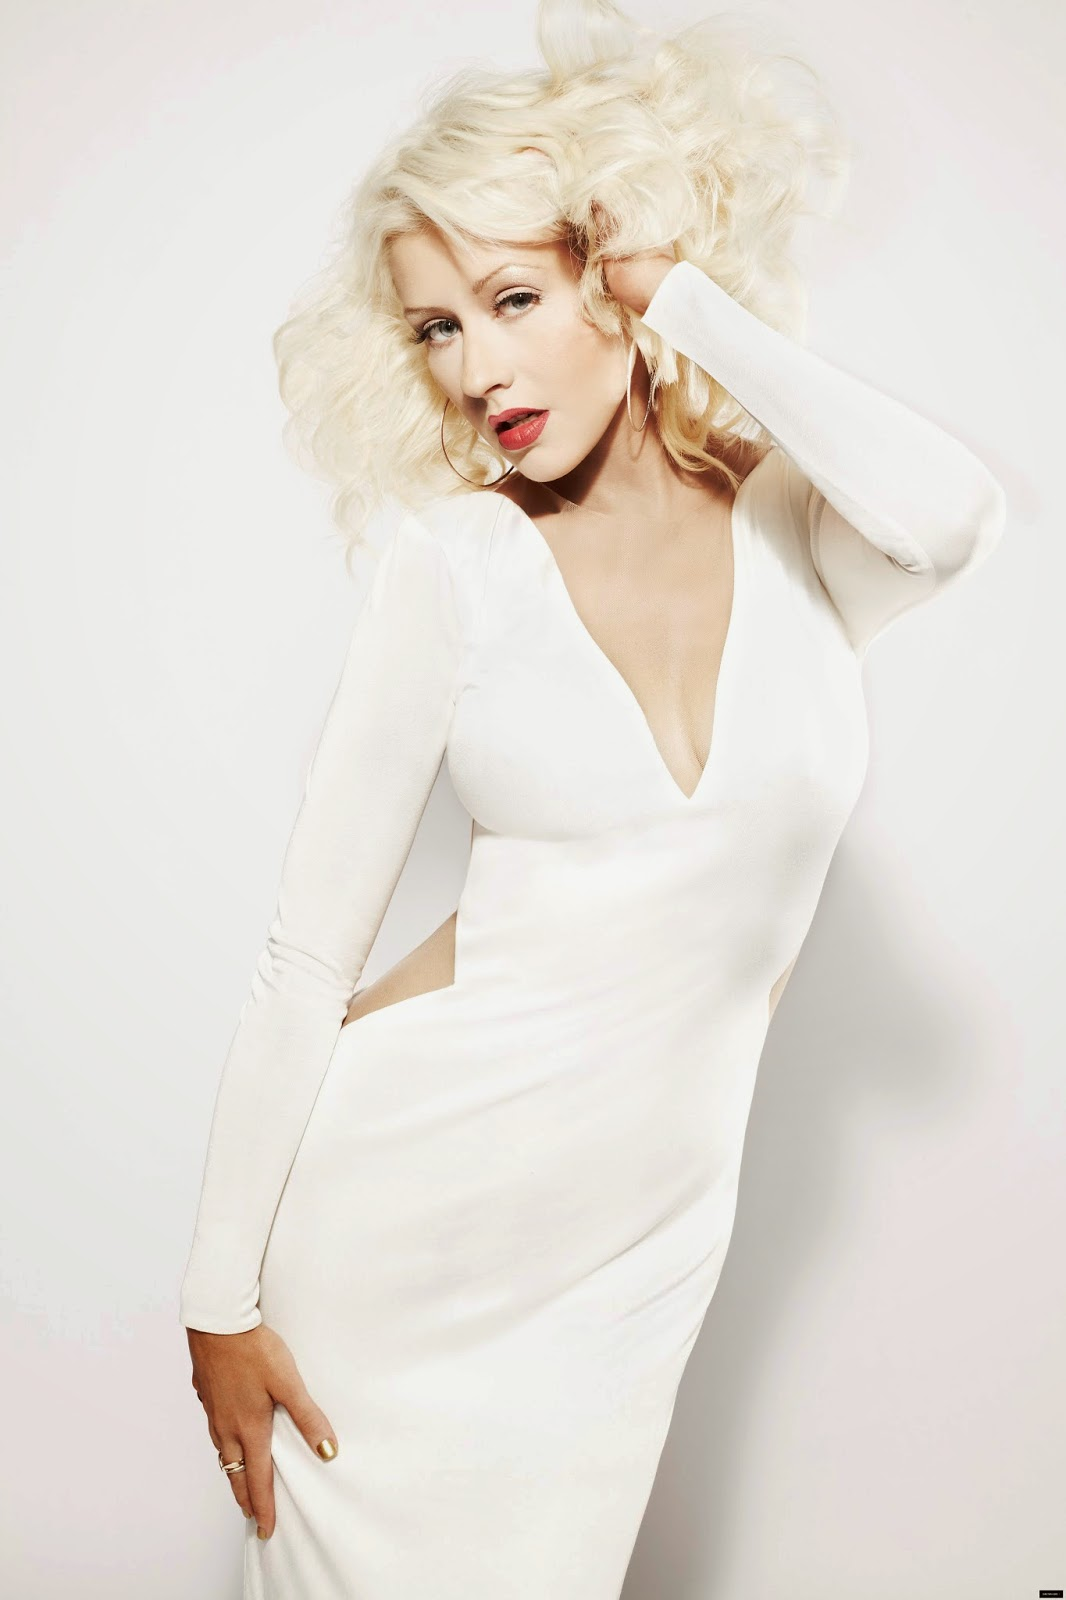 image Christina aguilera 2013 photoshoot